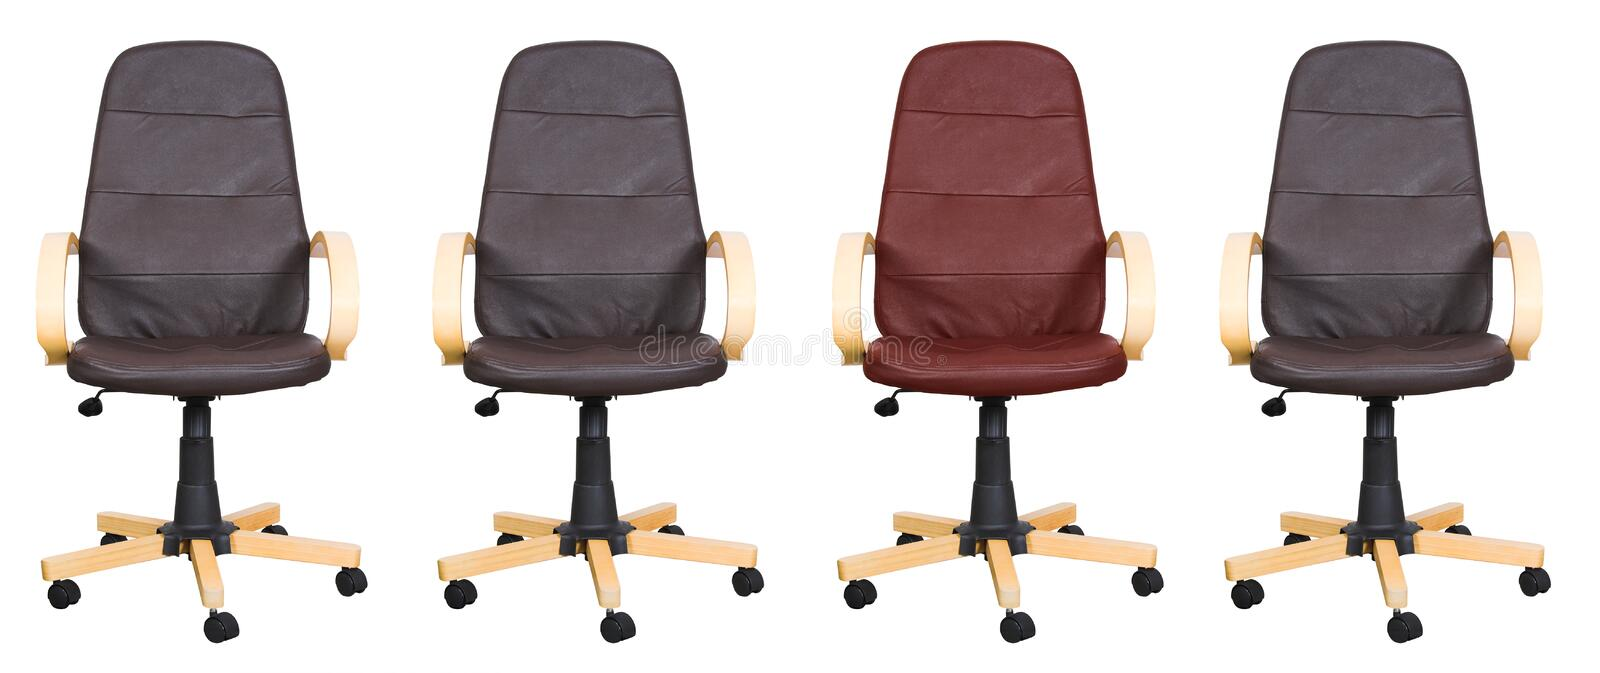 Download Business Chairs - Be Different Stock Image - Image of business, distinguish: 472355